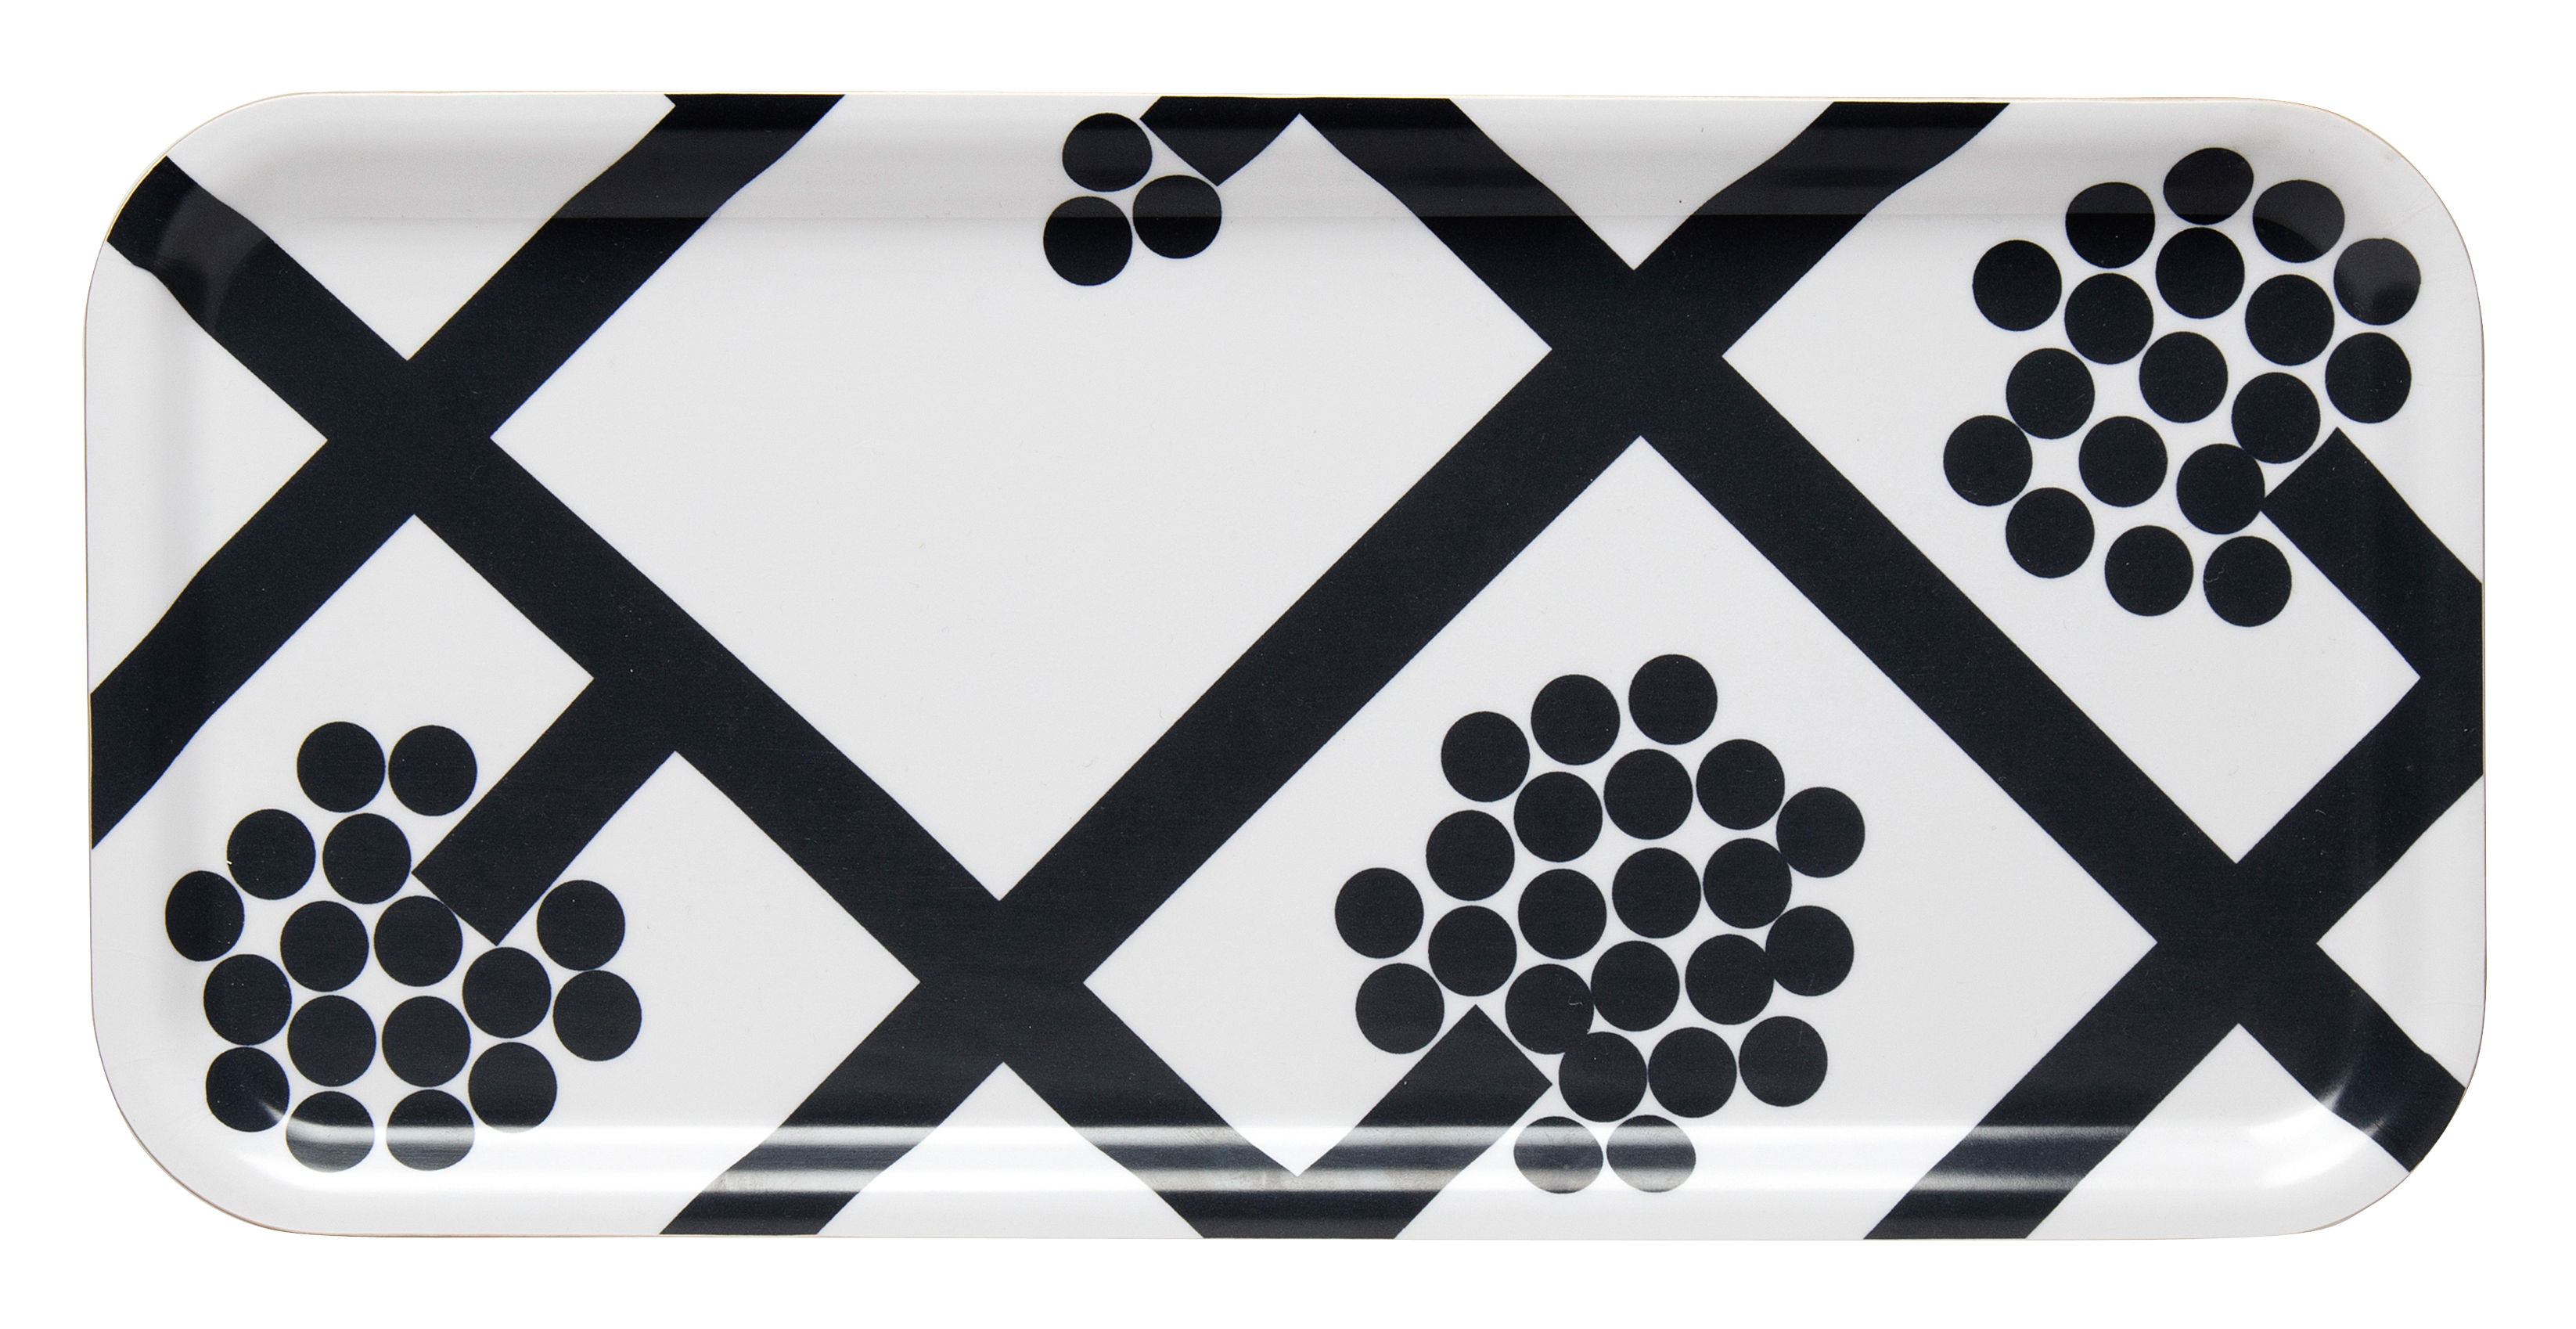 Tableware - Trays - Spaljé Tray - 15 x 32 cm by Marimekko - Spaljé / Black & White - Laminated birch